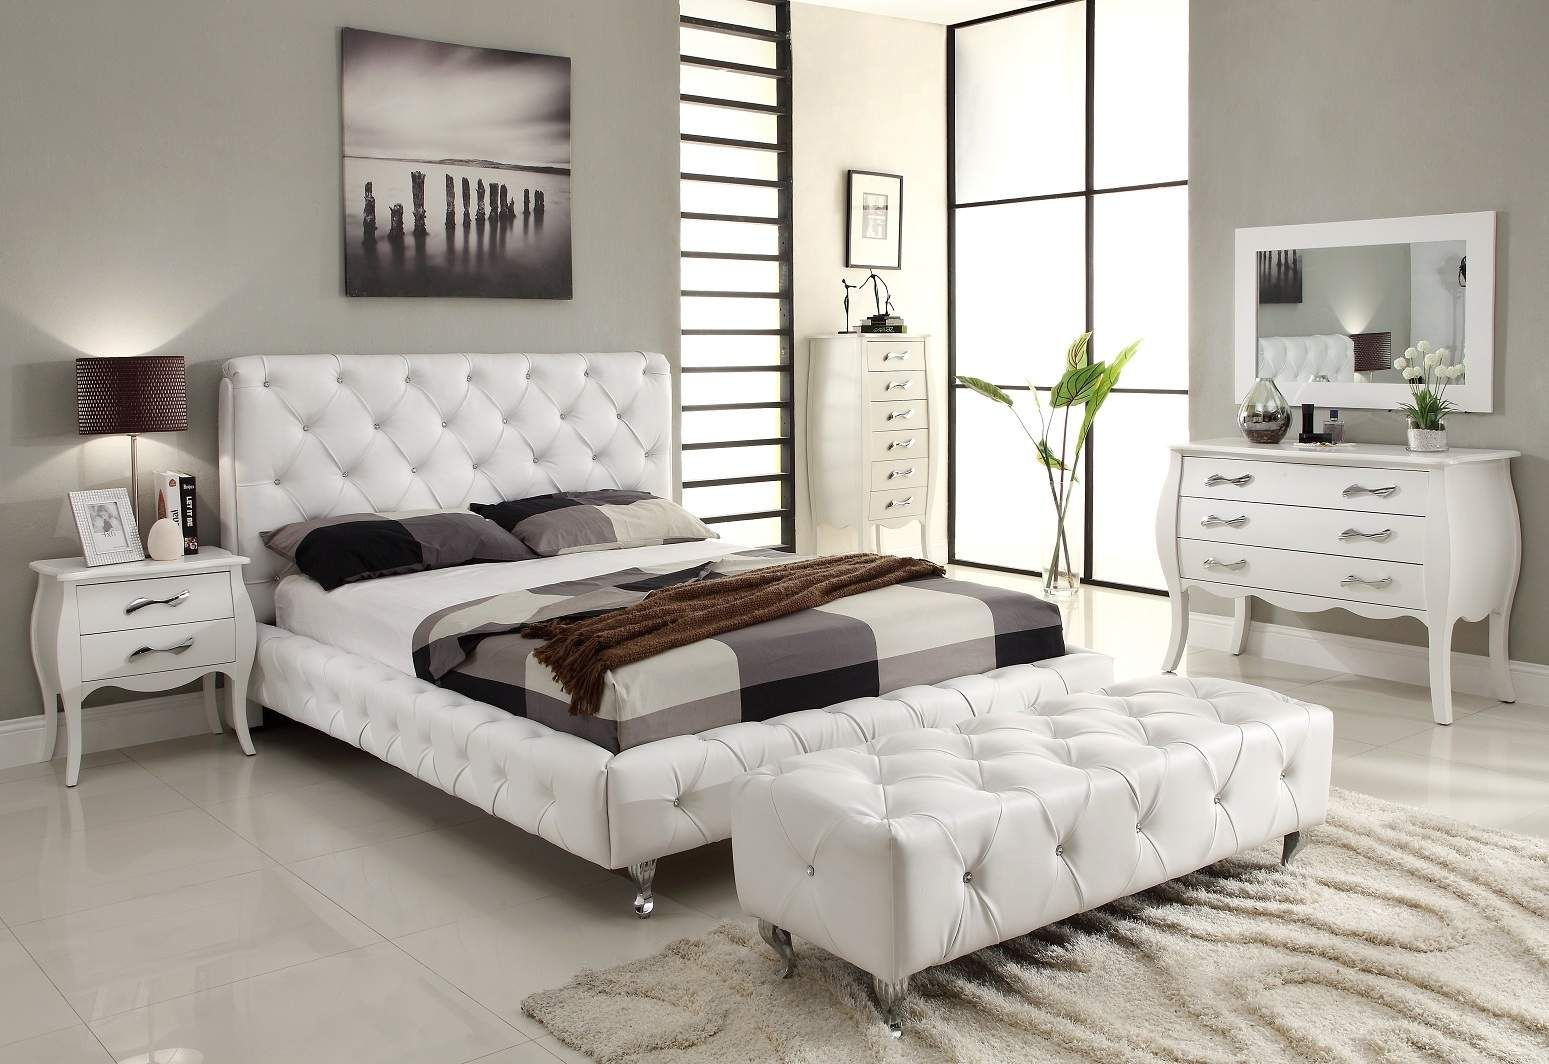 You Will Find Inspirational Bedroom Interiors Here. In Addition To Pictures  Of Great Bedrooms, You Will Also Find Ideas For Decorative Pillows, ...